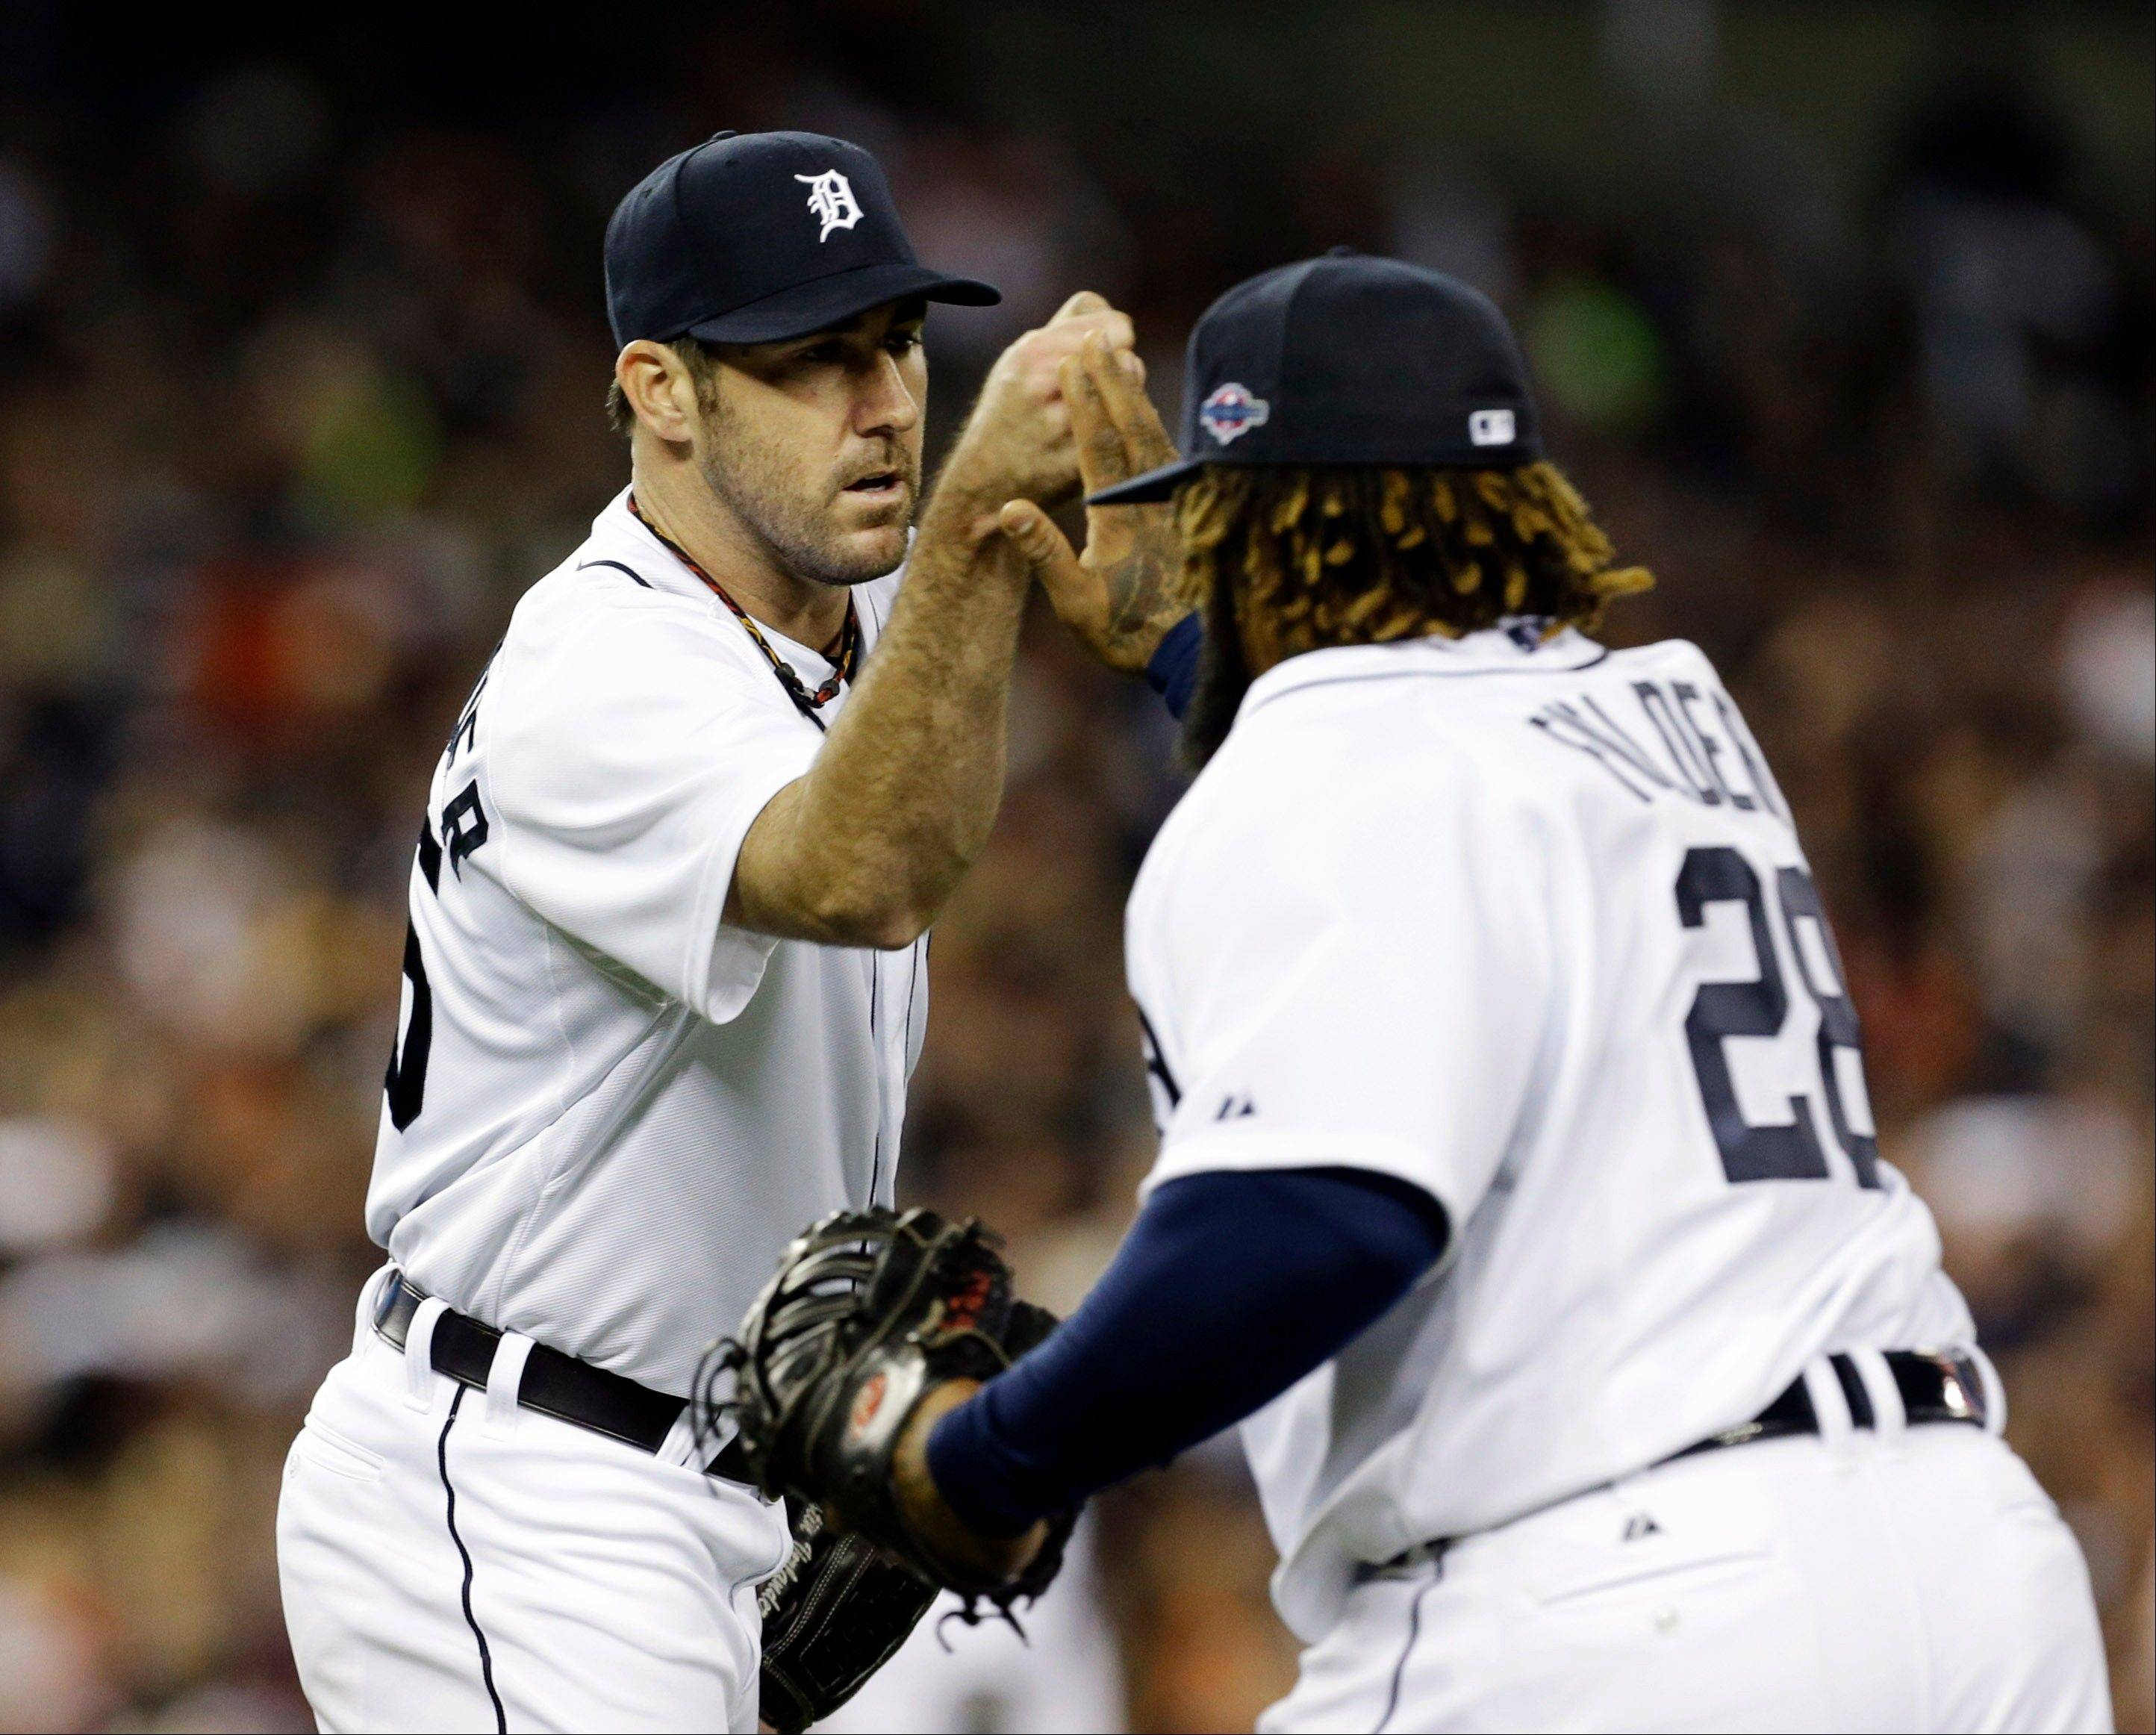 Detroit Tigers pitcher Justin Verlander congratulates first baseman Prince Fielder Tuesday after New York Yankees' Raul Ibanez grounded out to Fielder in the seventh inning during Game 3 of the American League championship series in Detroit.